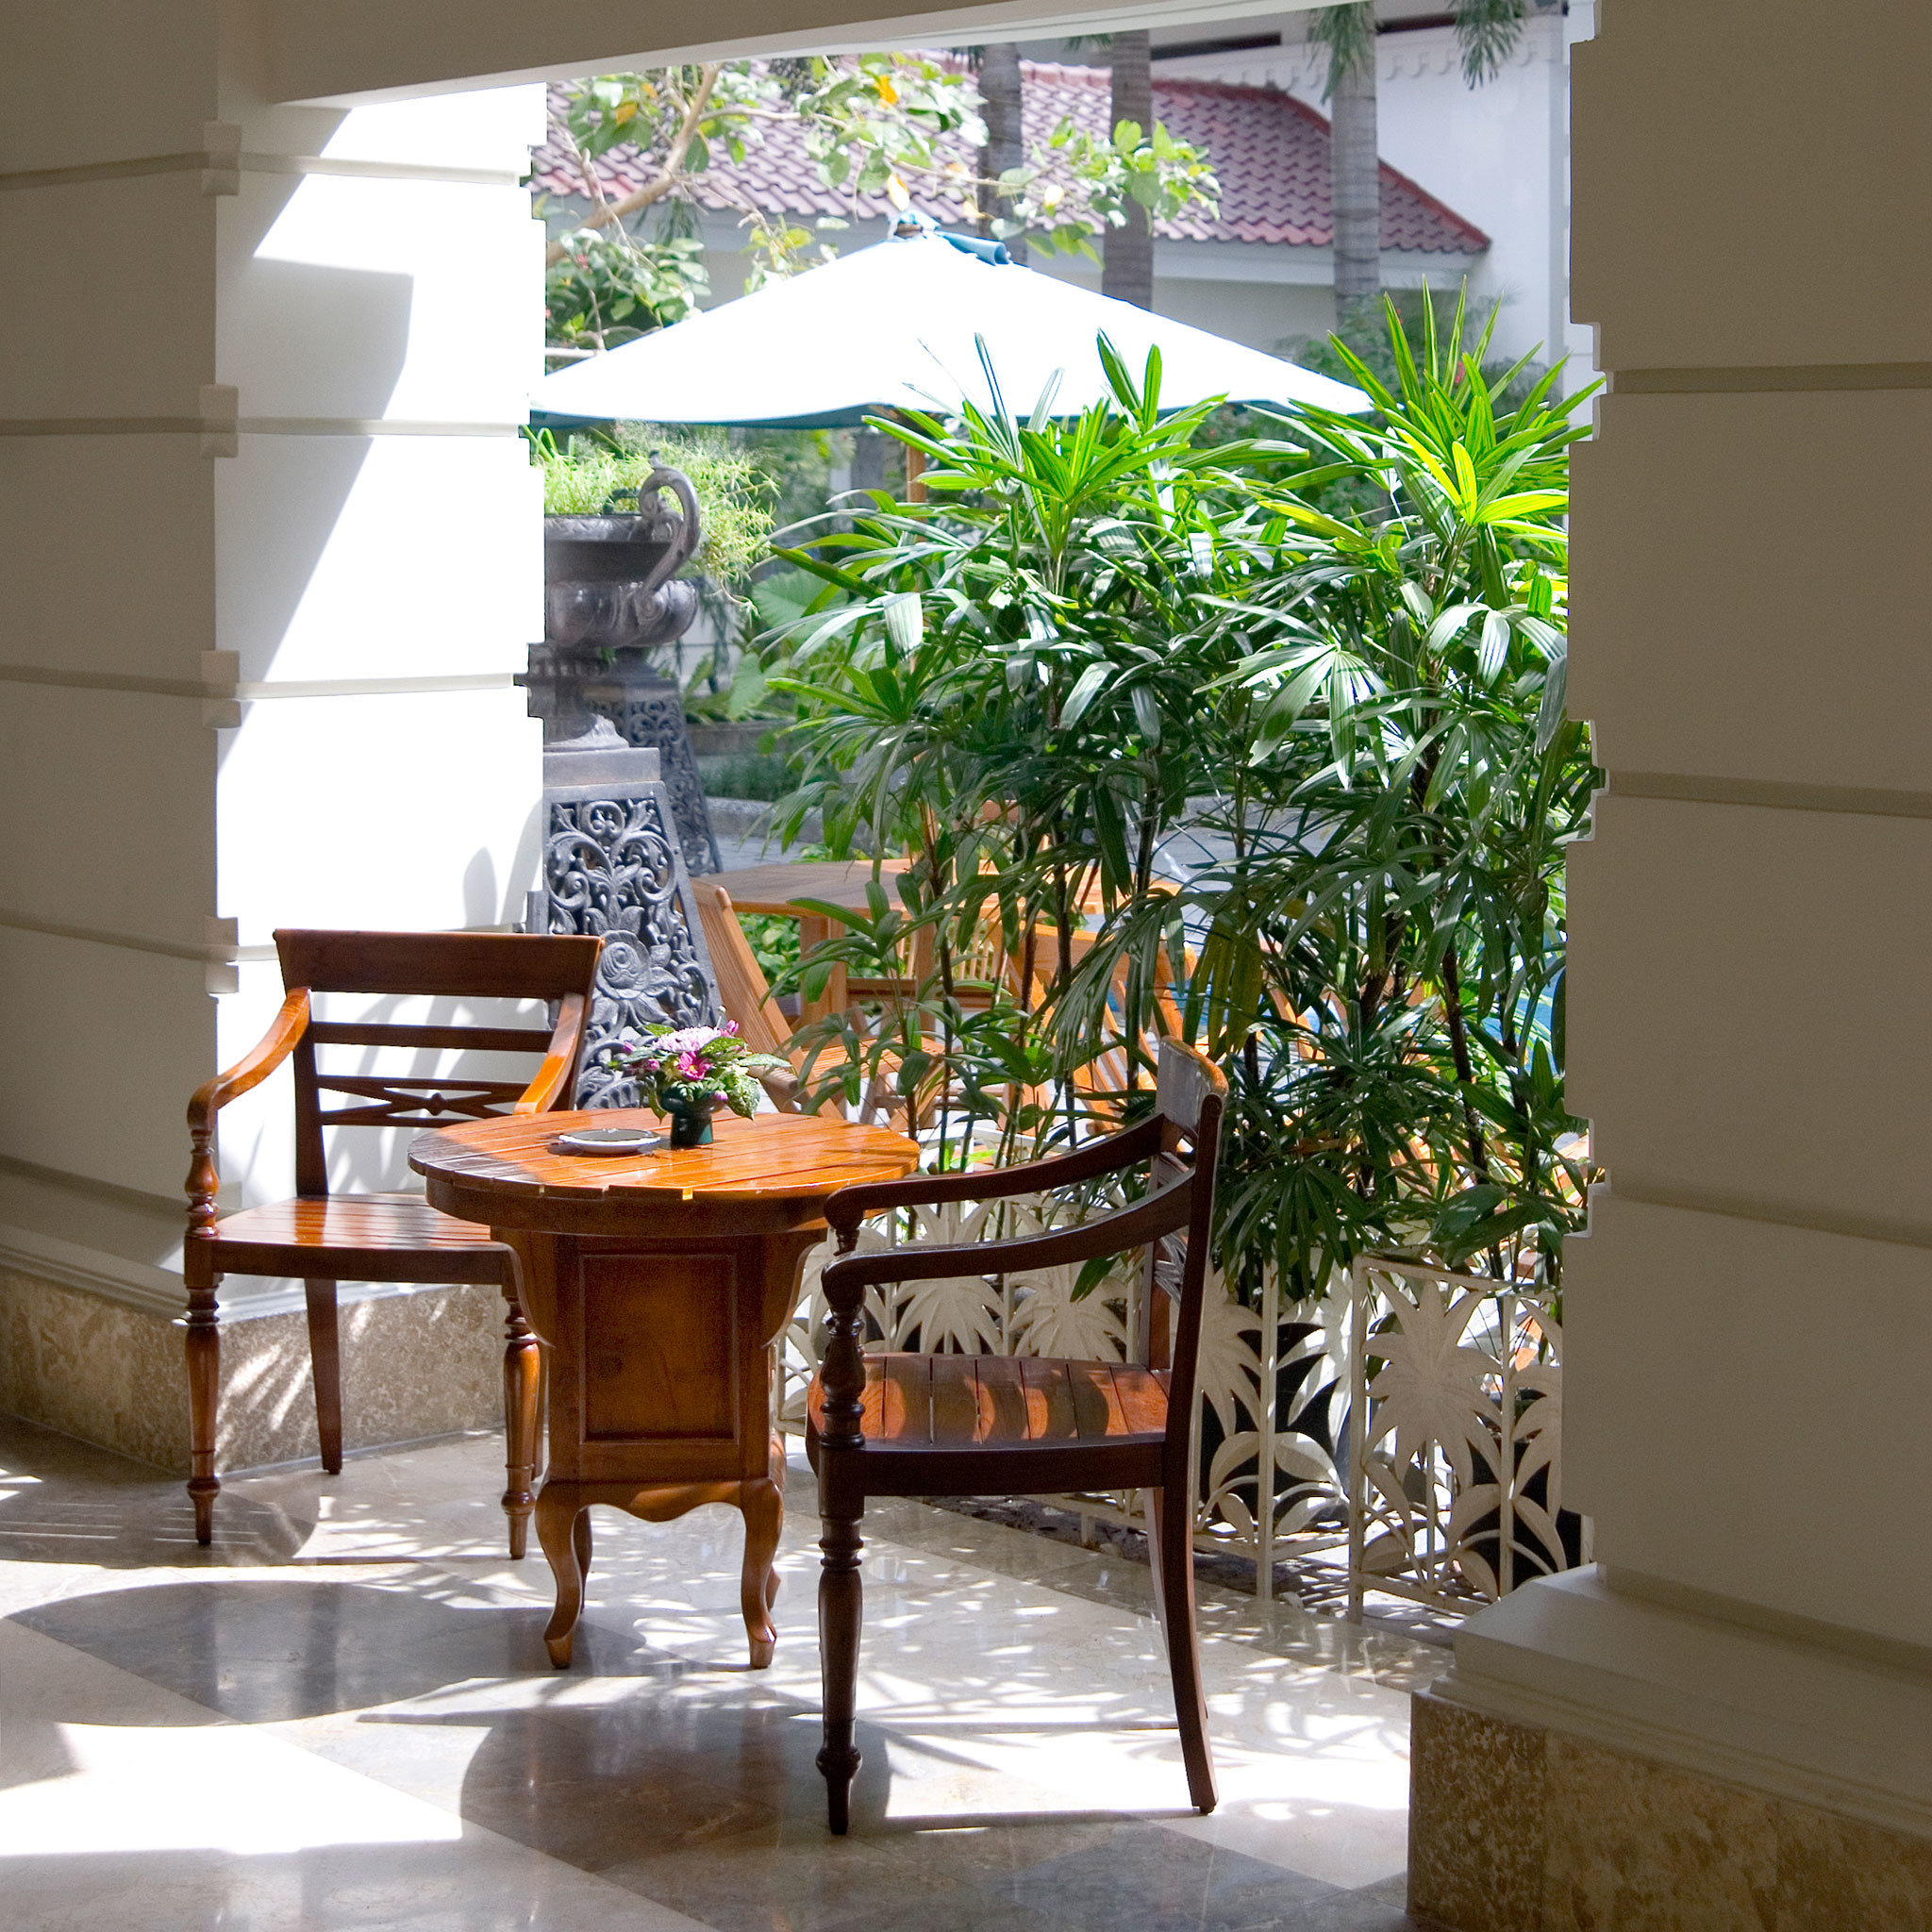 Grounds Lounge Resort floristry Courtyard home Lobby outdoor structure flower